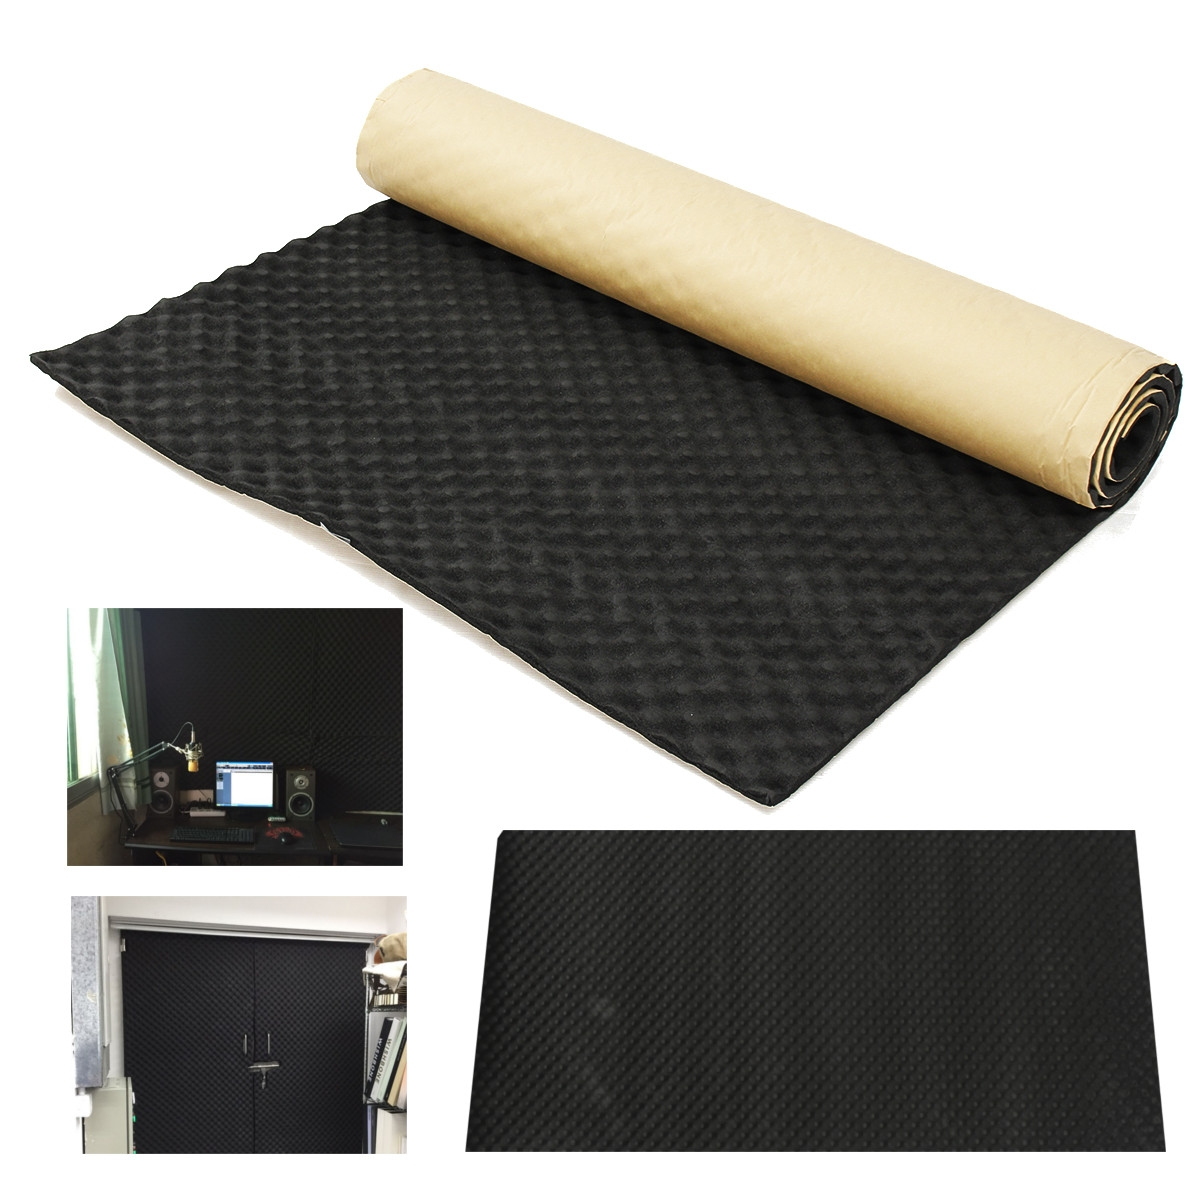 20mm Self Adhesive Soundproof Foam Acoustic Foam Roll for Studio Car Audio Sound Deadening Proofing